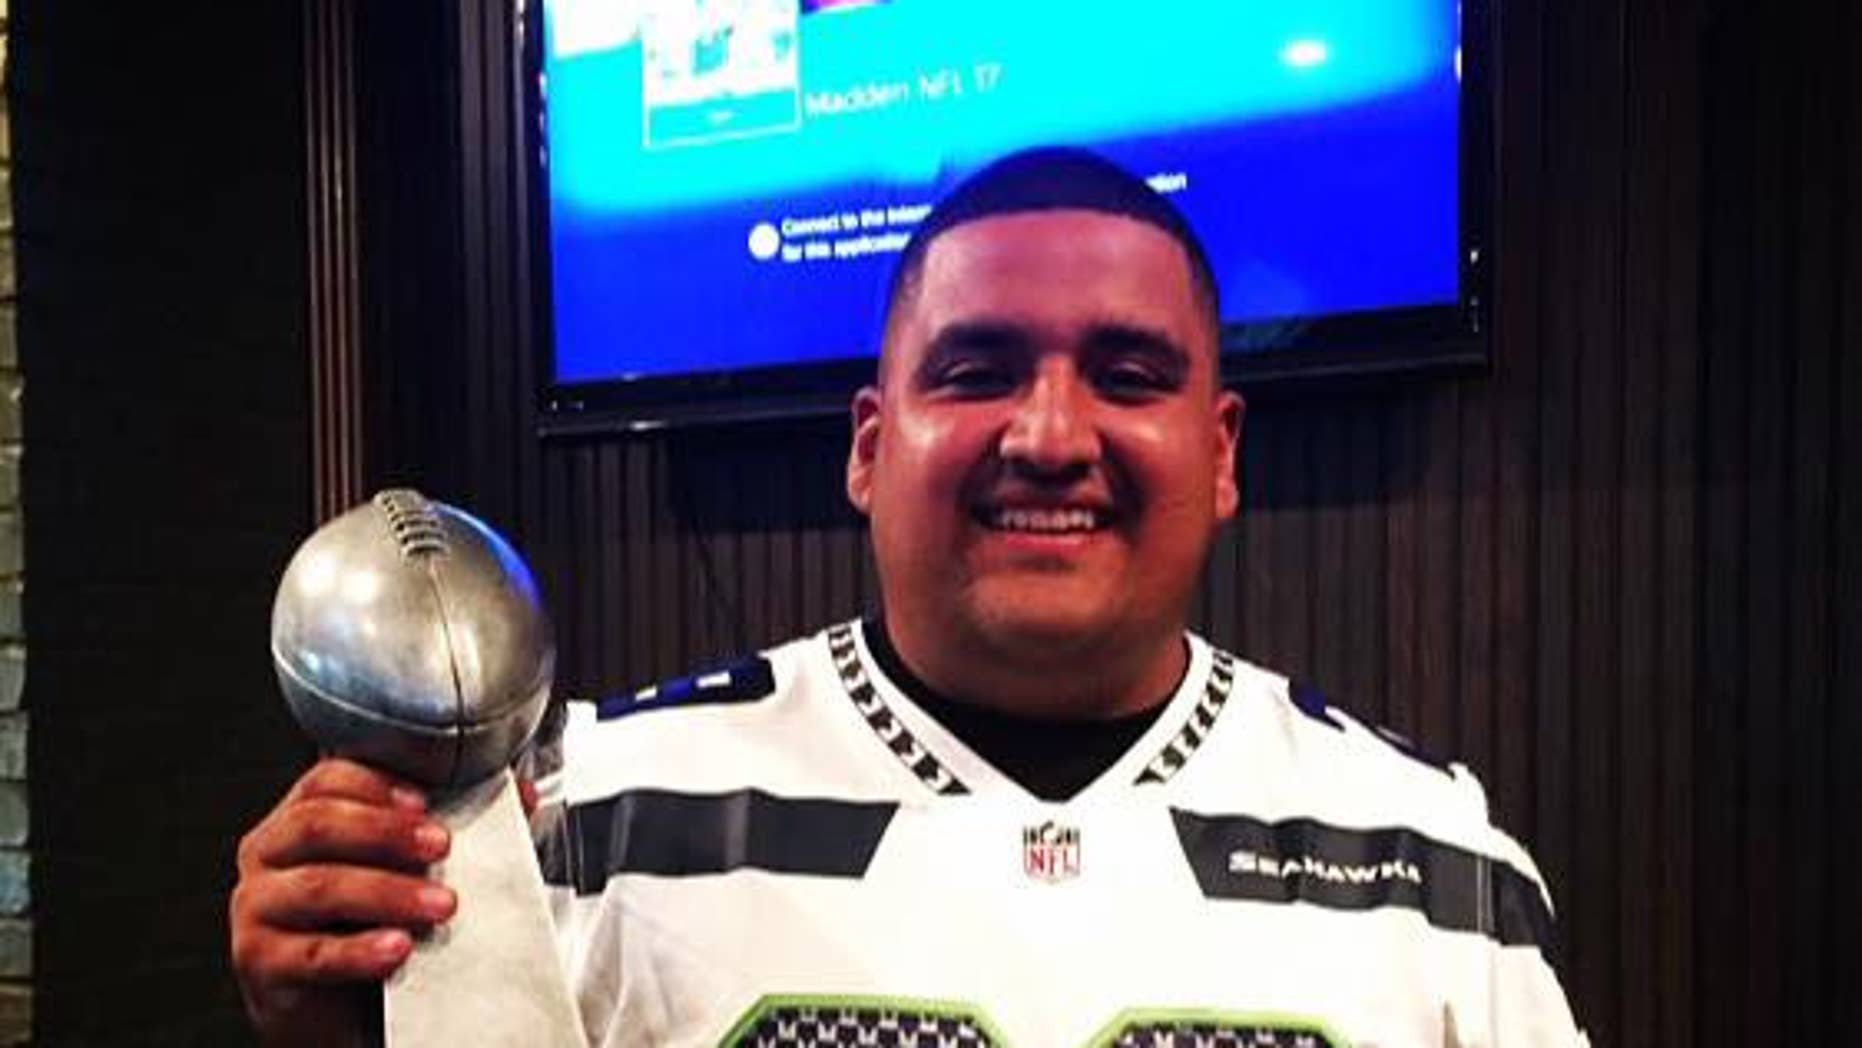 Ryen Aleman, who was in Florida during a mass shooting at a Madden NFL tournament, died in a car crash in Texas on Sunday, according to reports.